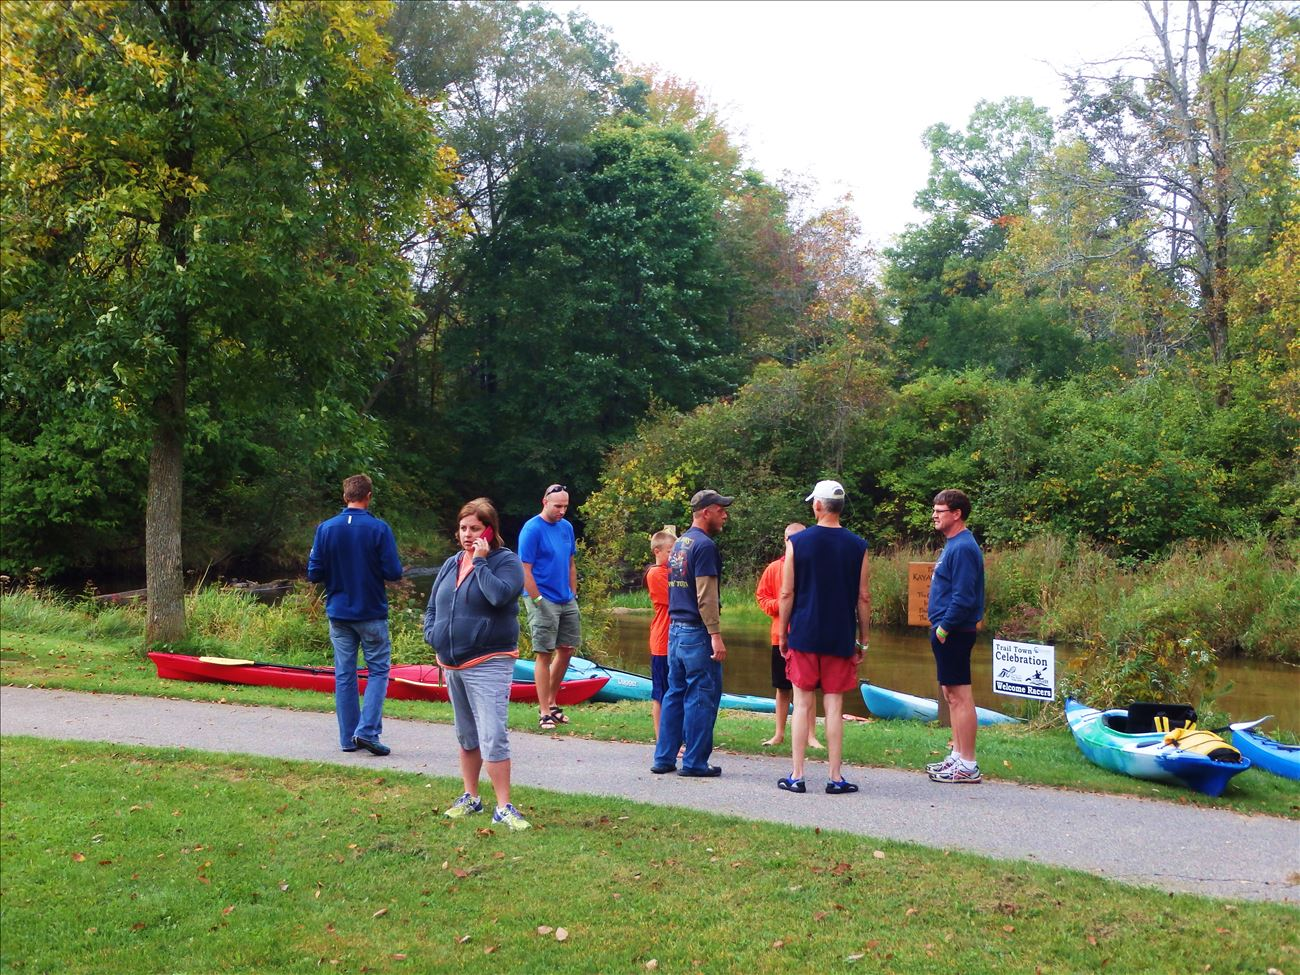 Paddlers getting ready to launch at the White Cloud Rotary Park Put In